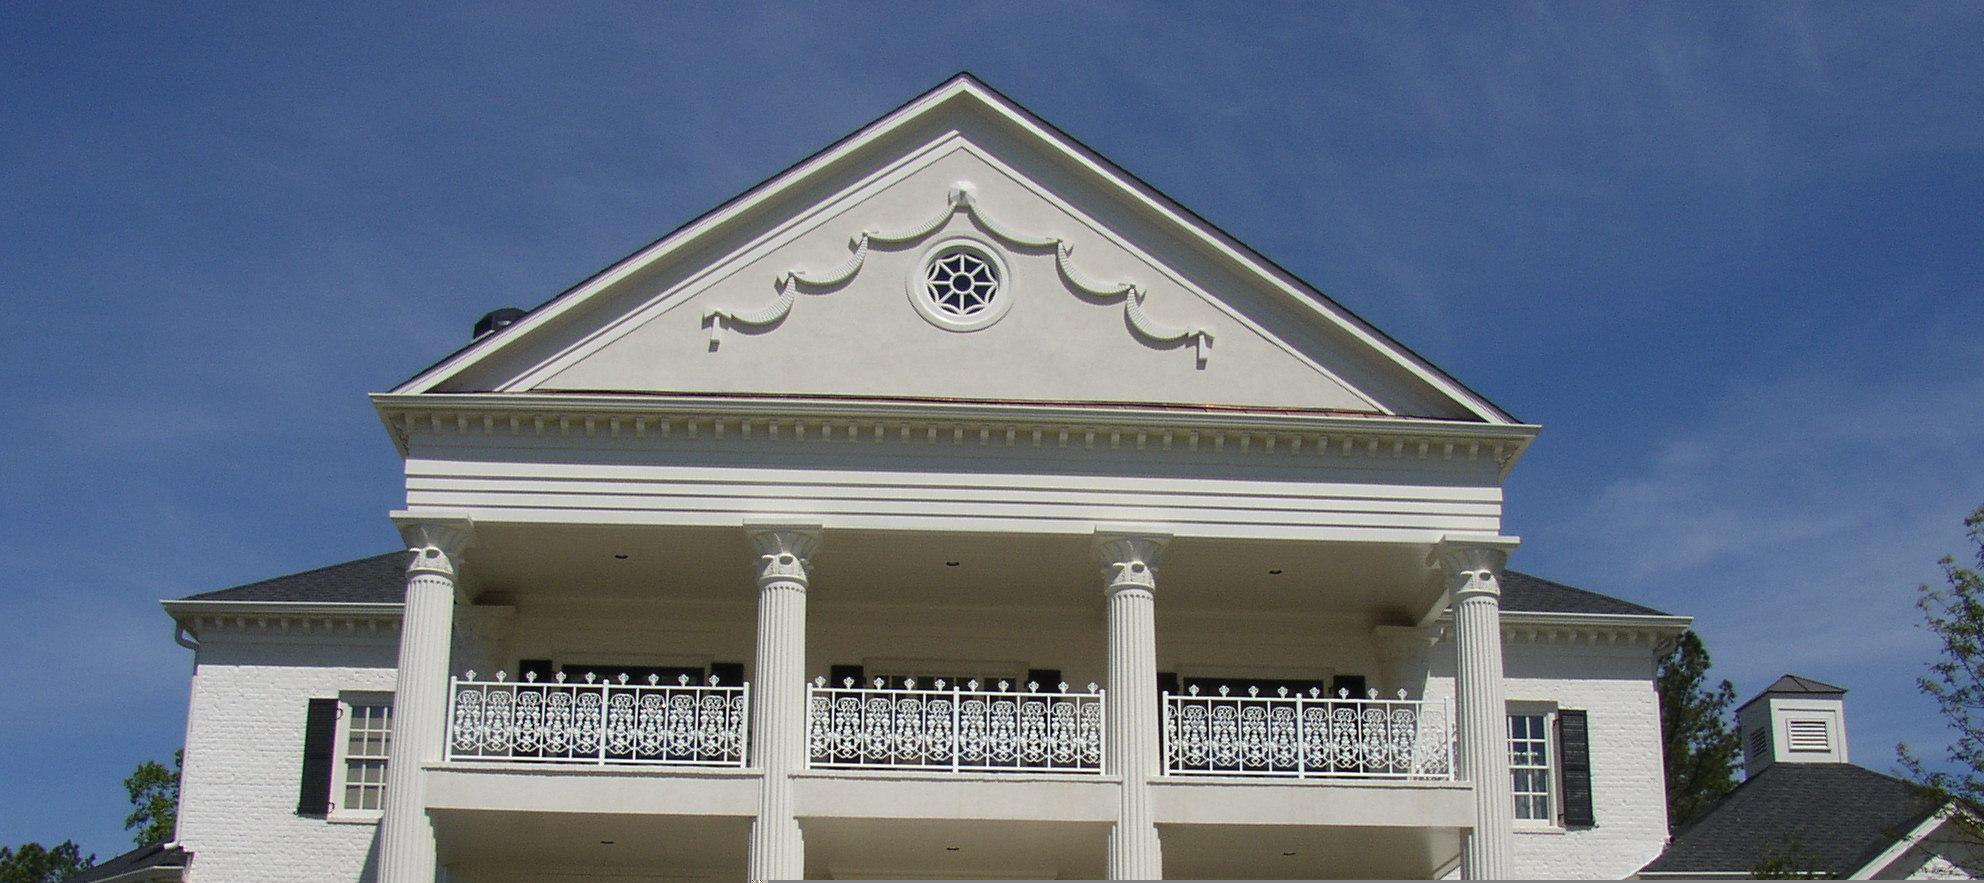 Home with beautiful Columns and acanthus capitals